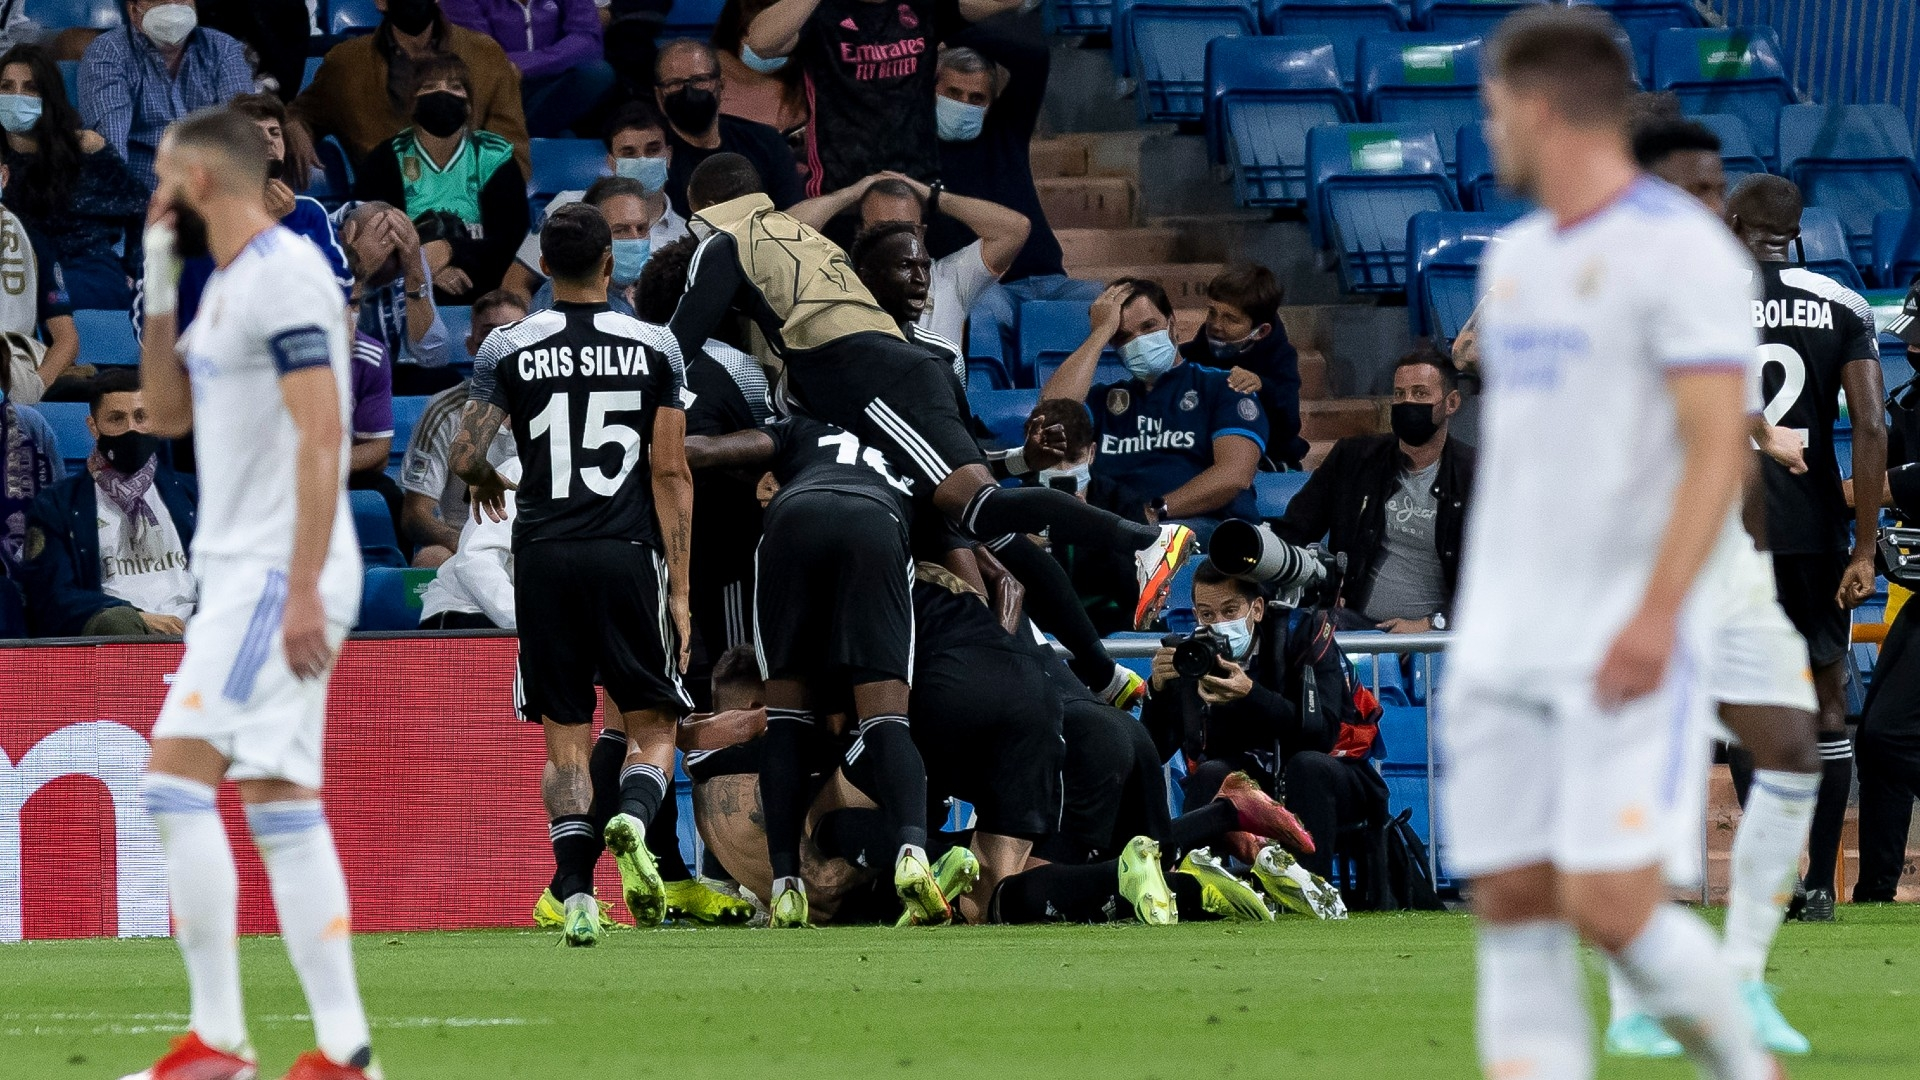 Real Madrid stunned in 2-1 home defeat by Moldovans Sheriff